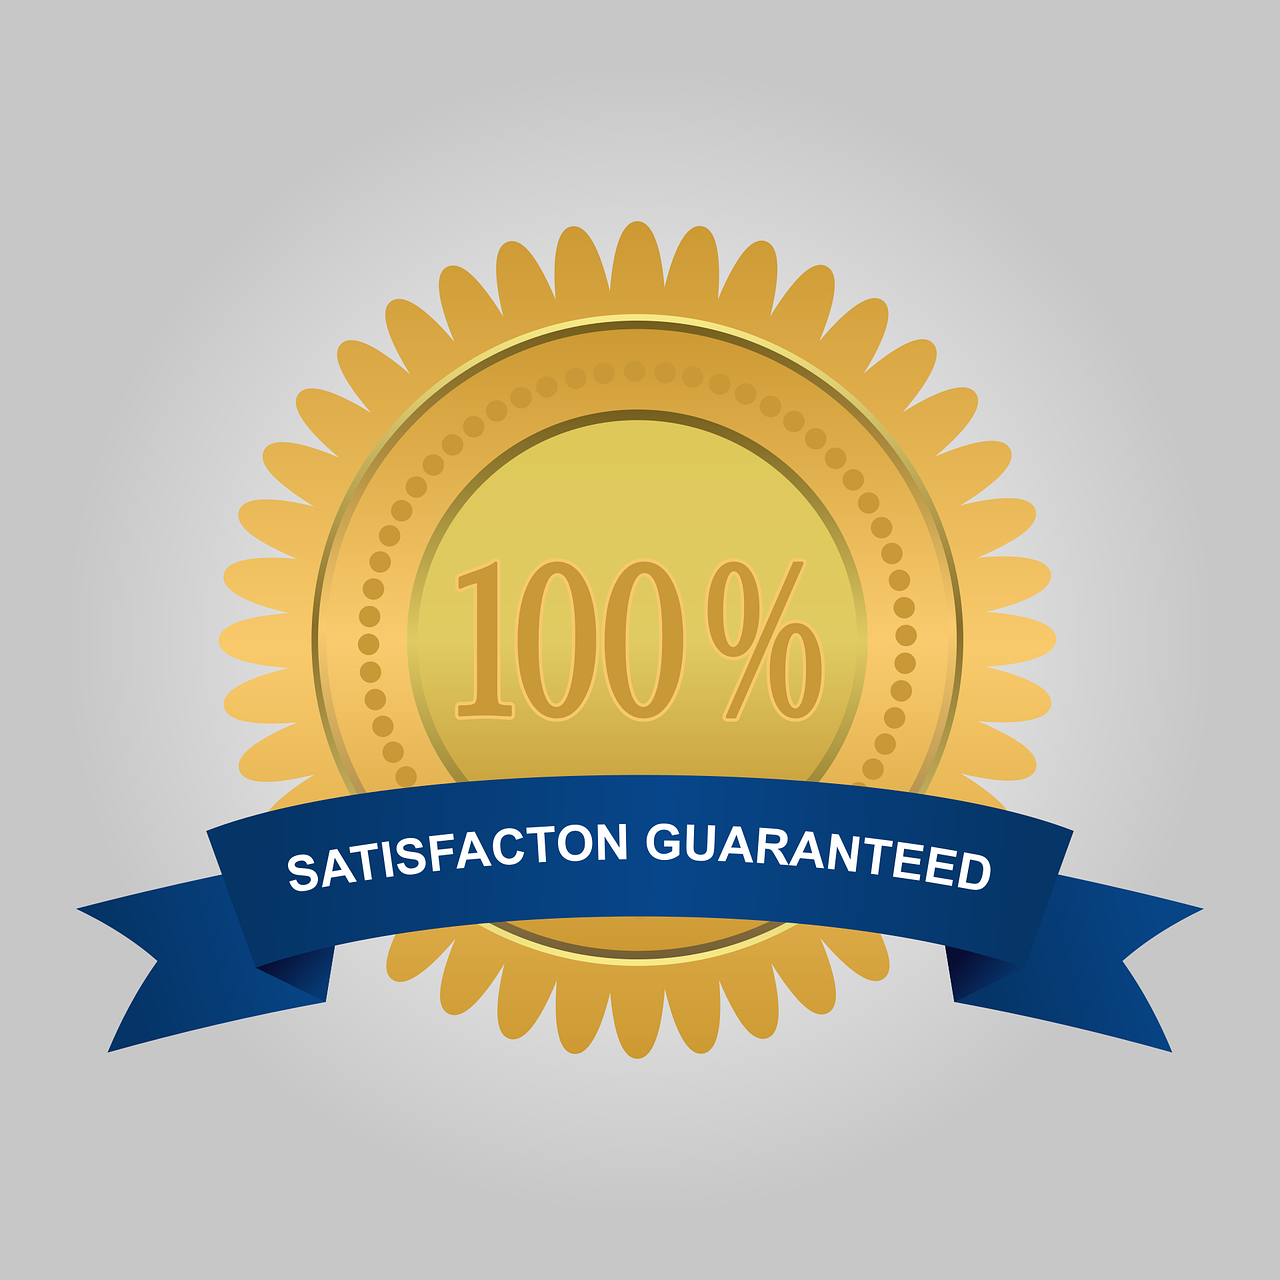 100% satisfaction guarantee on a gold label with navy  blue banner